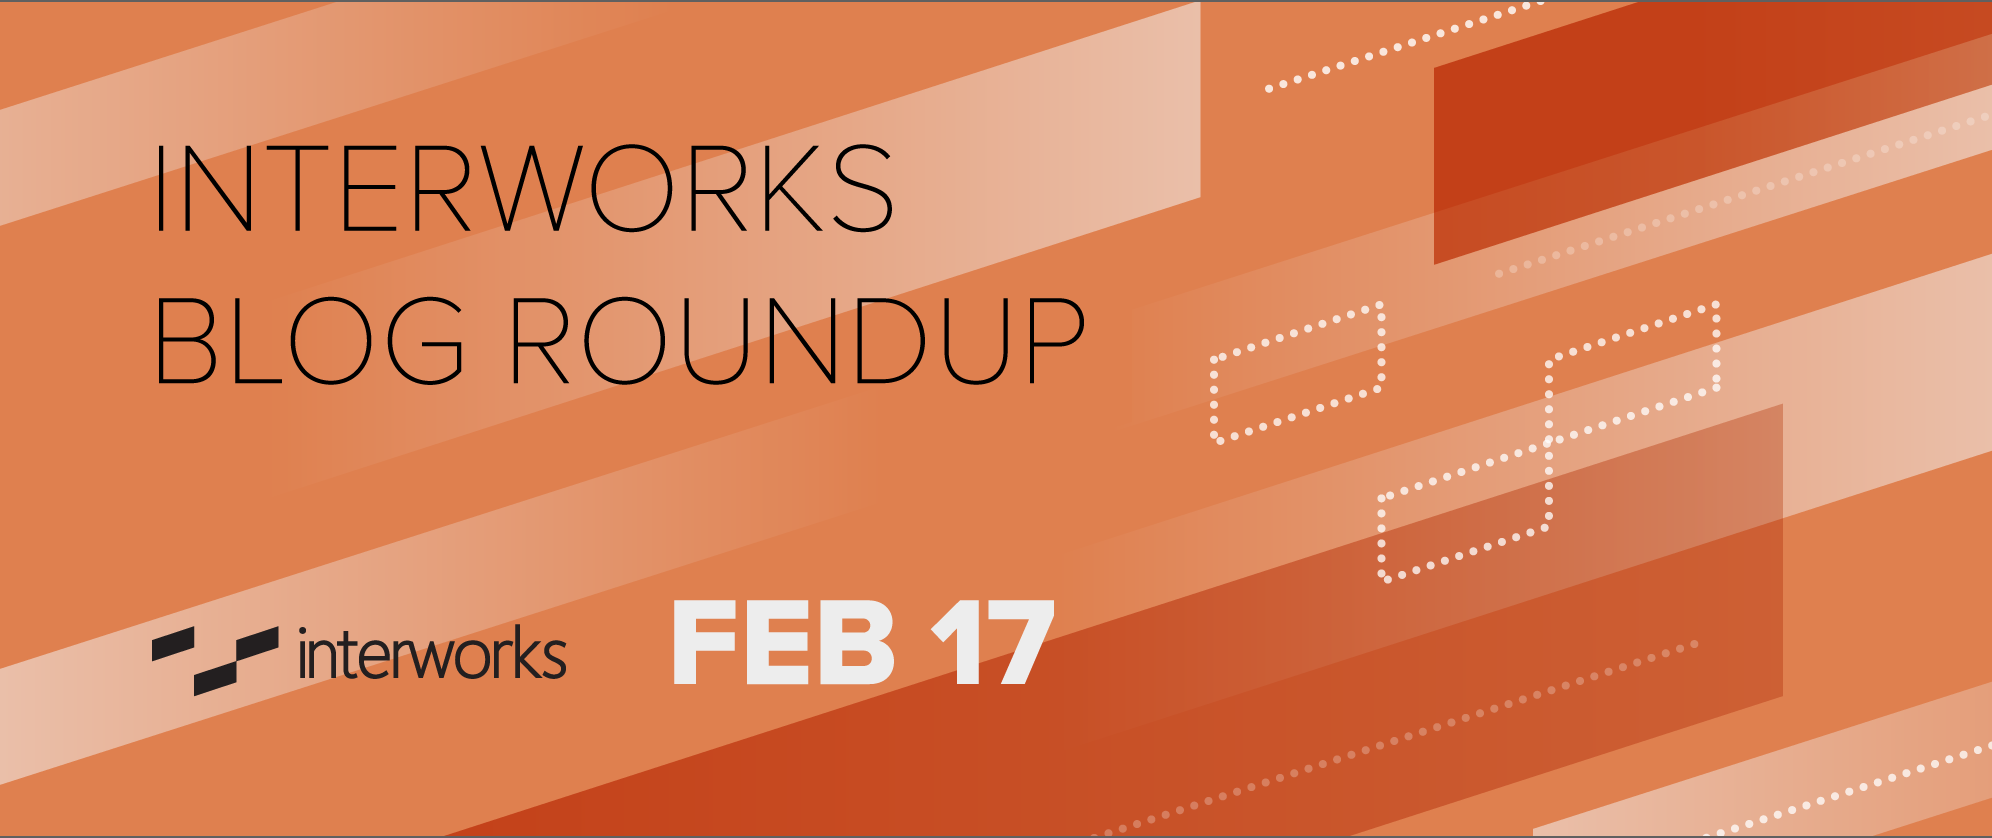 InterWorks Blog Roundup - Feb. 2017